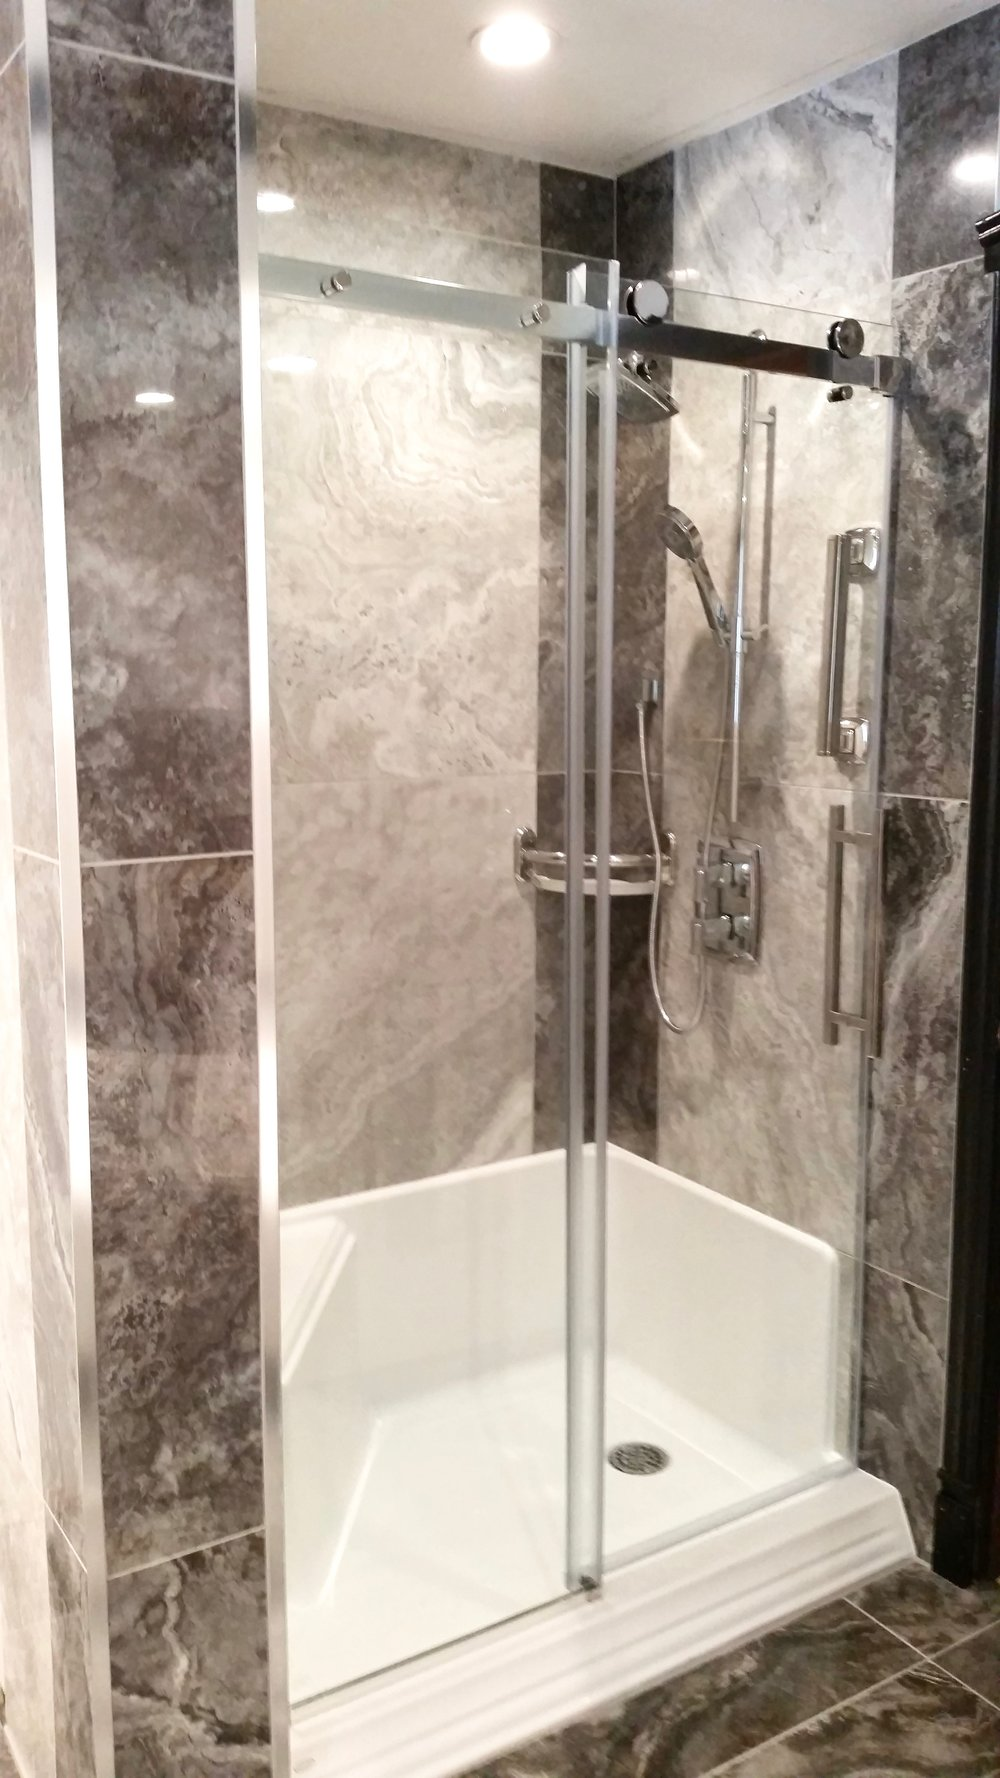 Shower stall with custom glass